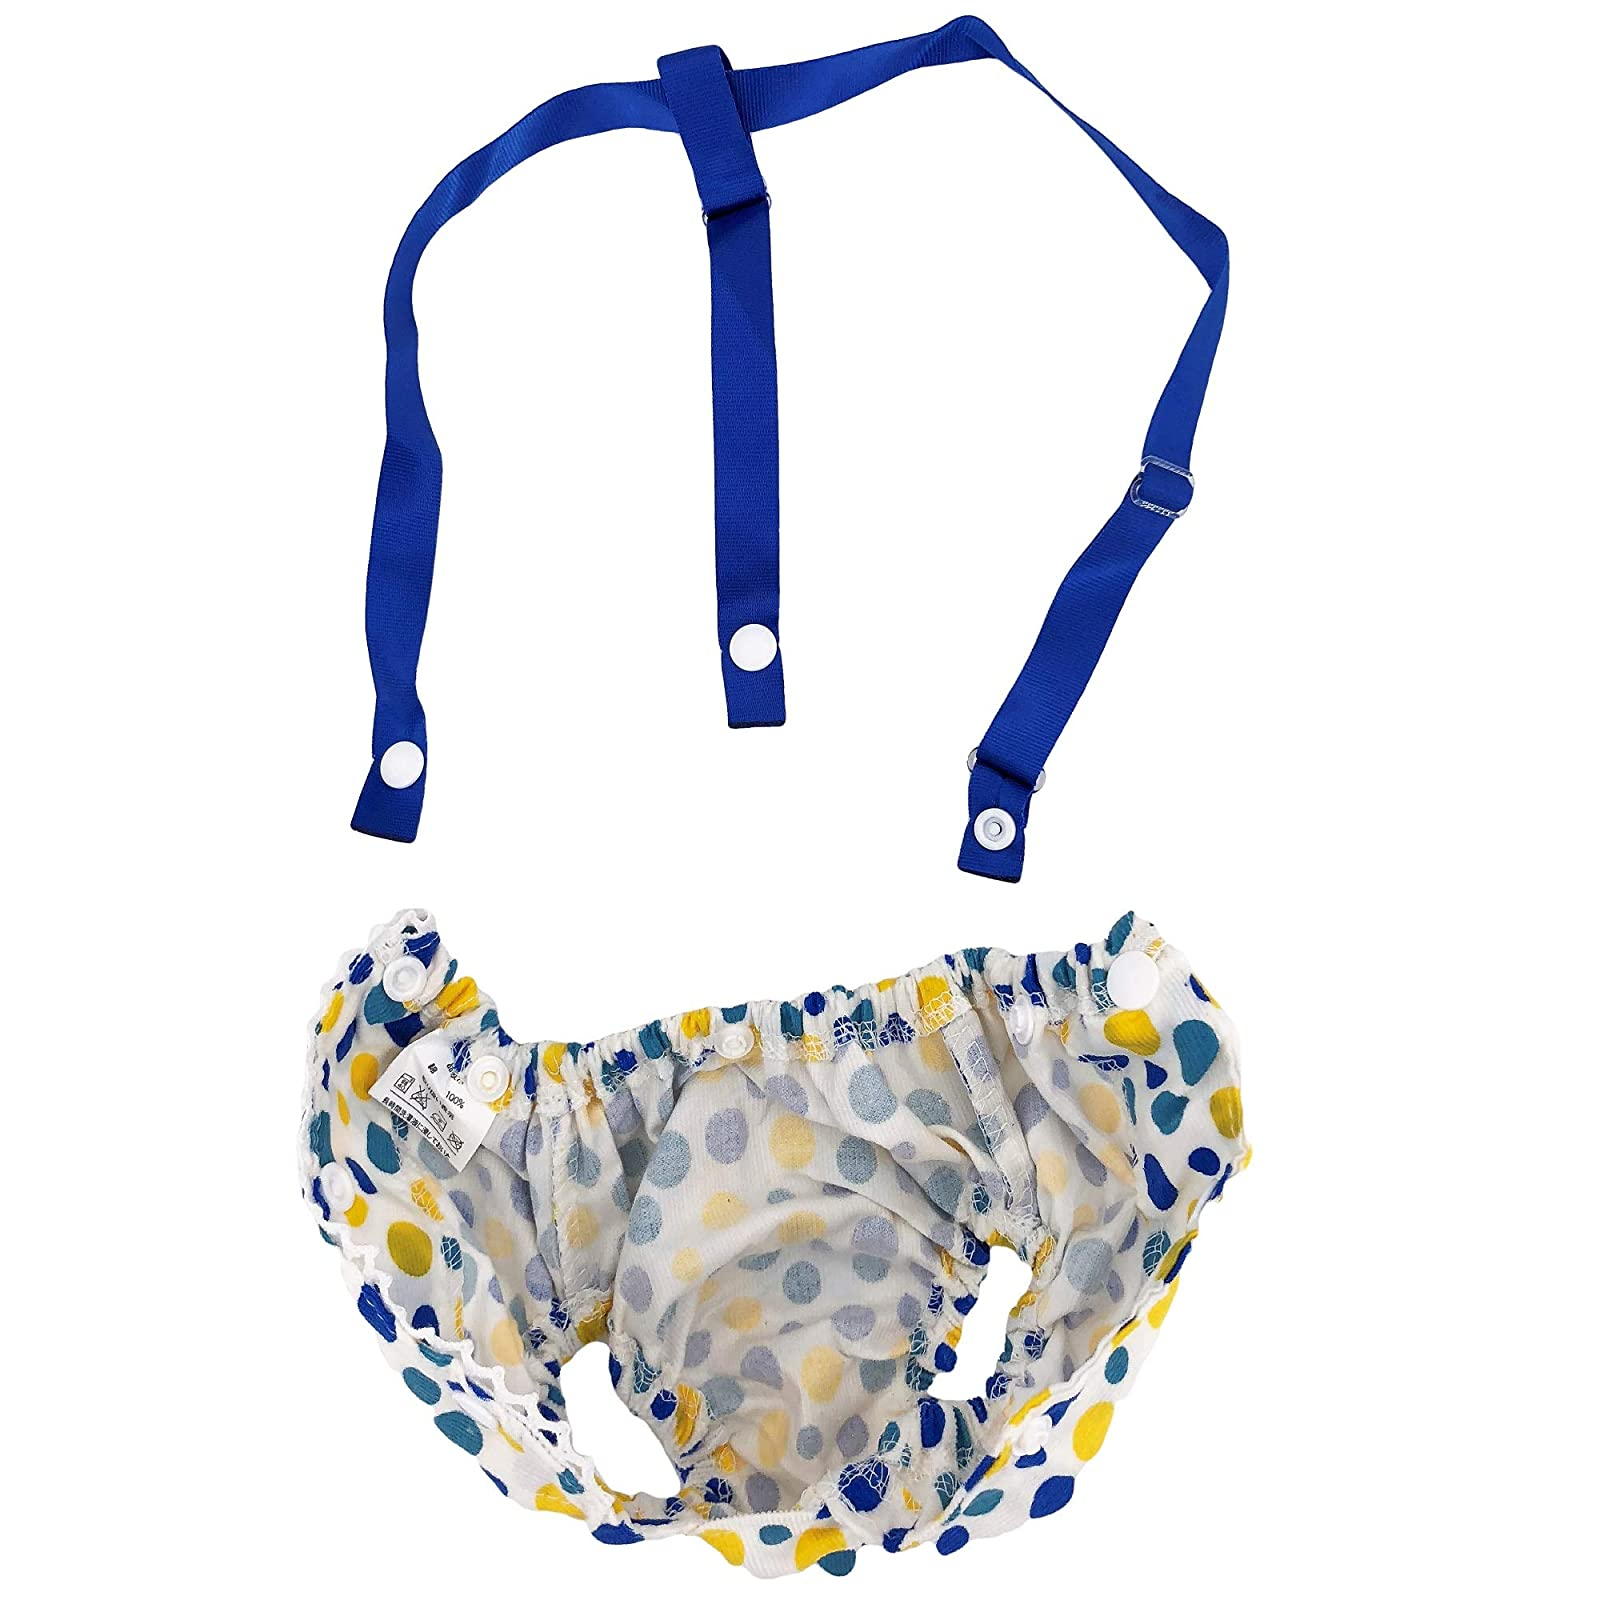 FunnyDogClothes Female Dog Diaper With Suspenders COTTON - 4